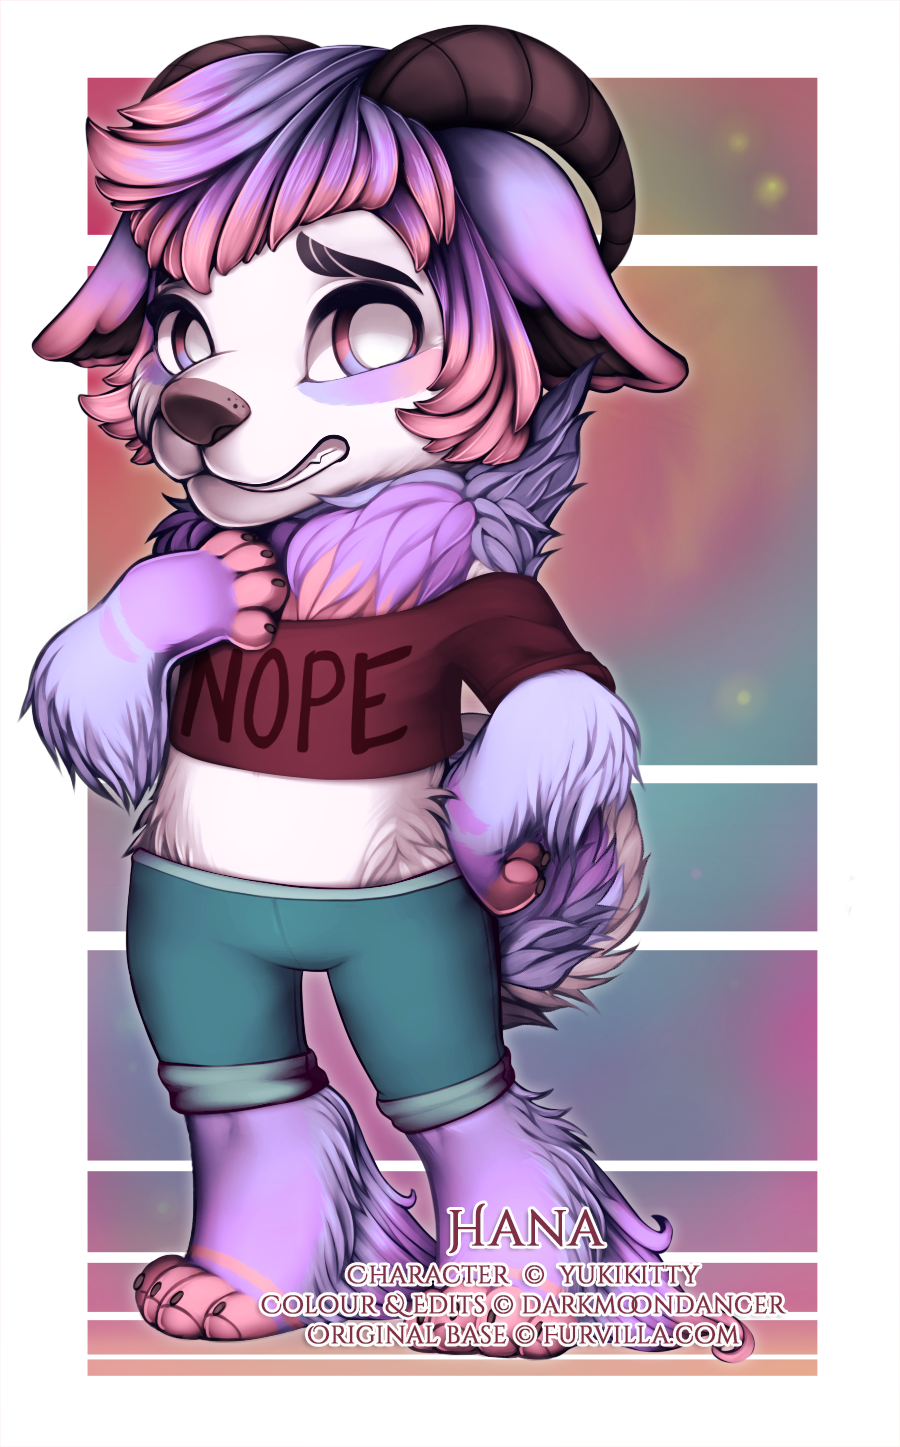 This is Hana (c) YukiKitty, and I got to do the colours as well as edit in the hair, horns, ears, expression change, shirt, pants, foot fluff and alteration to the tail!